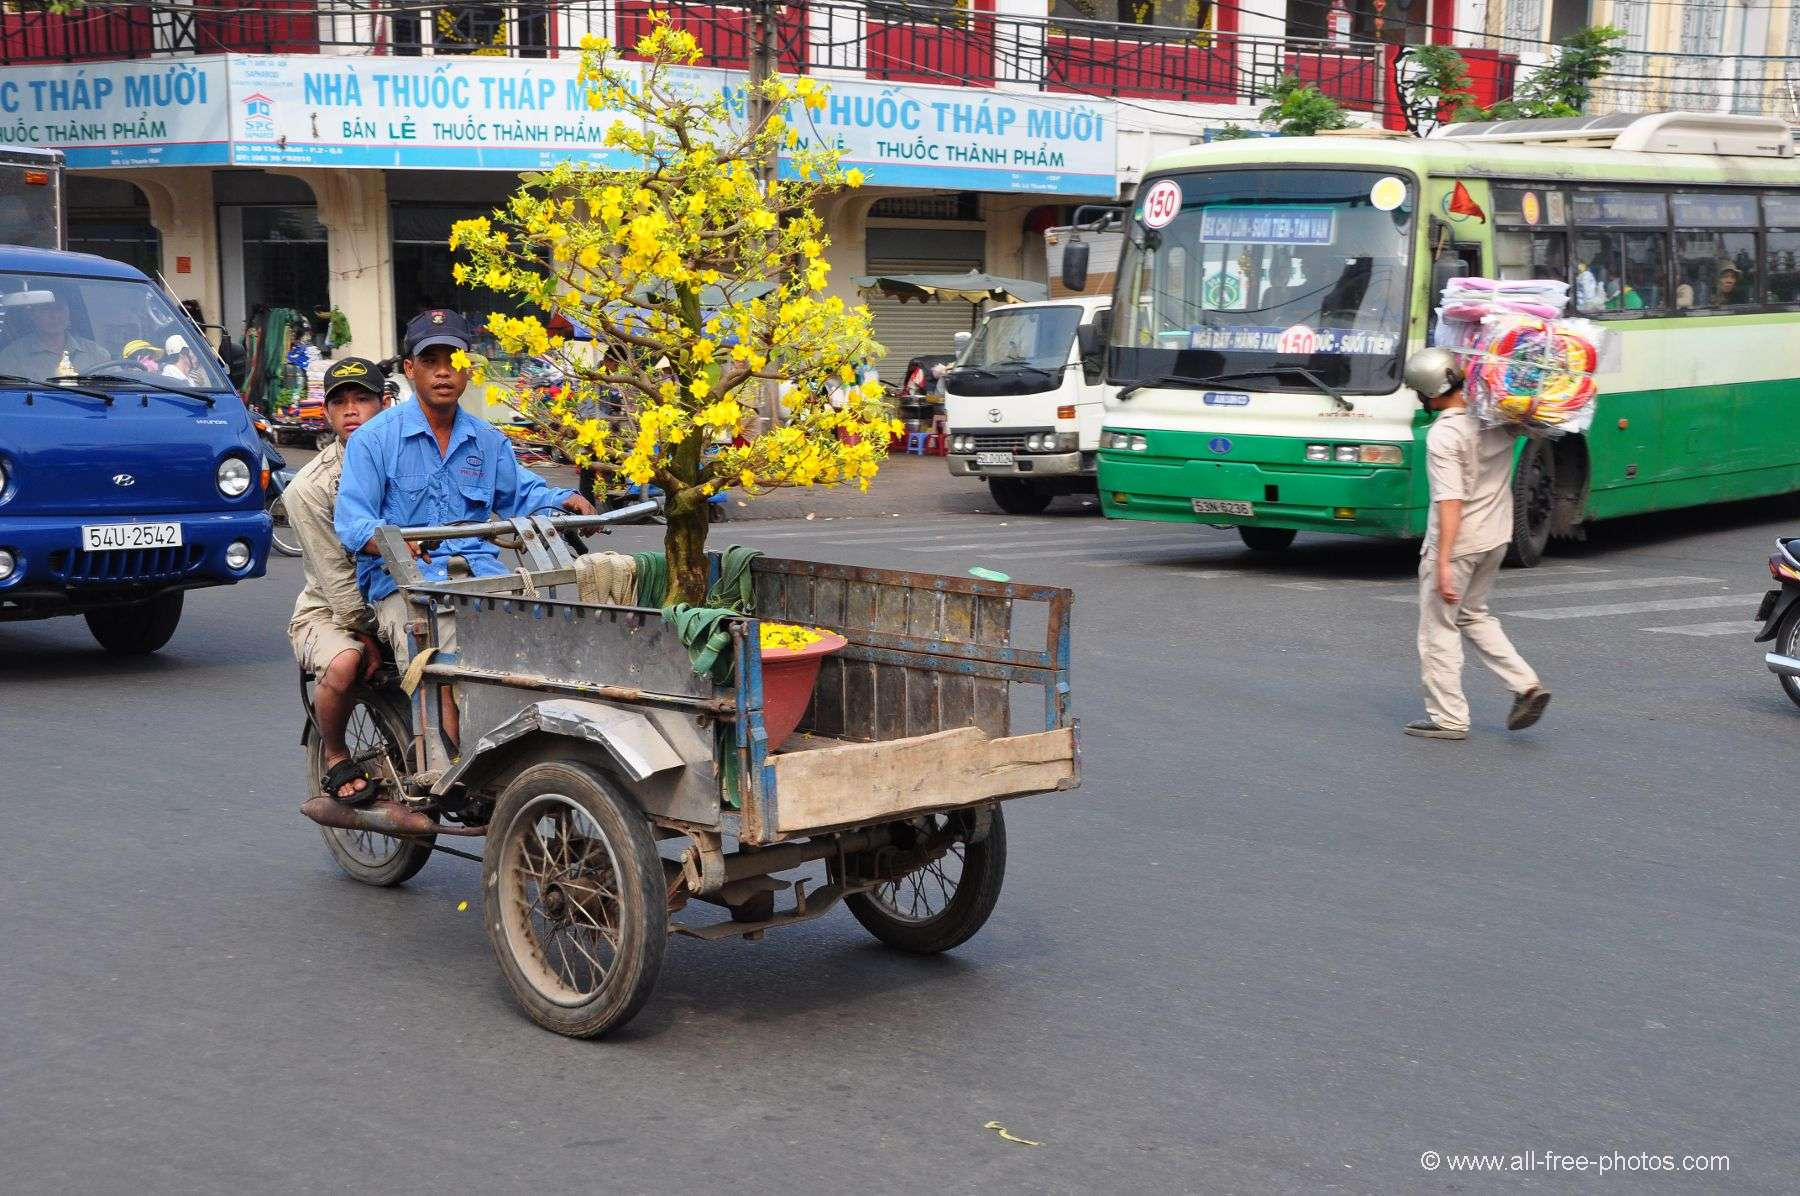 Daily life in Chi Minh City - Vietnam